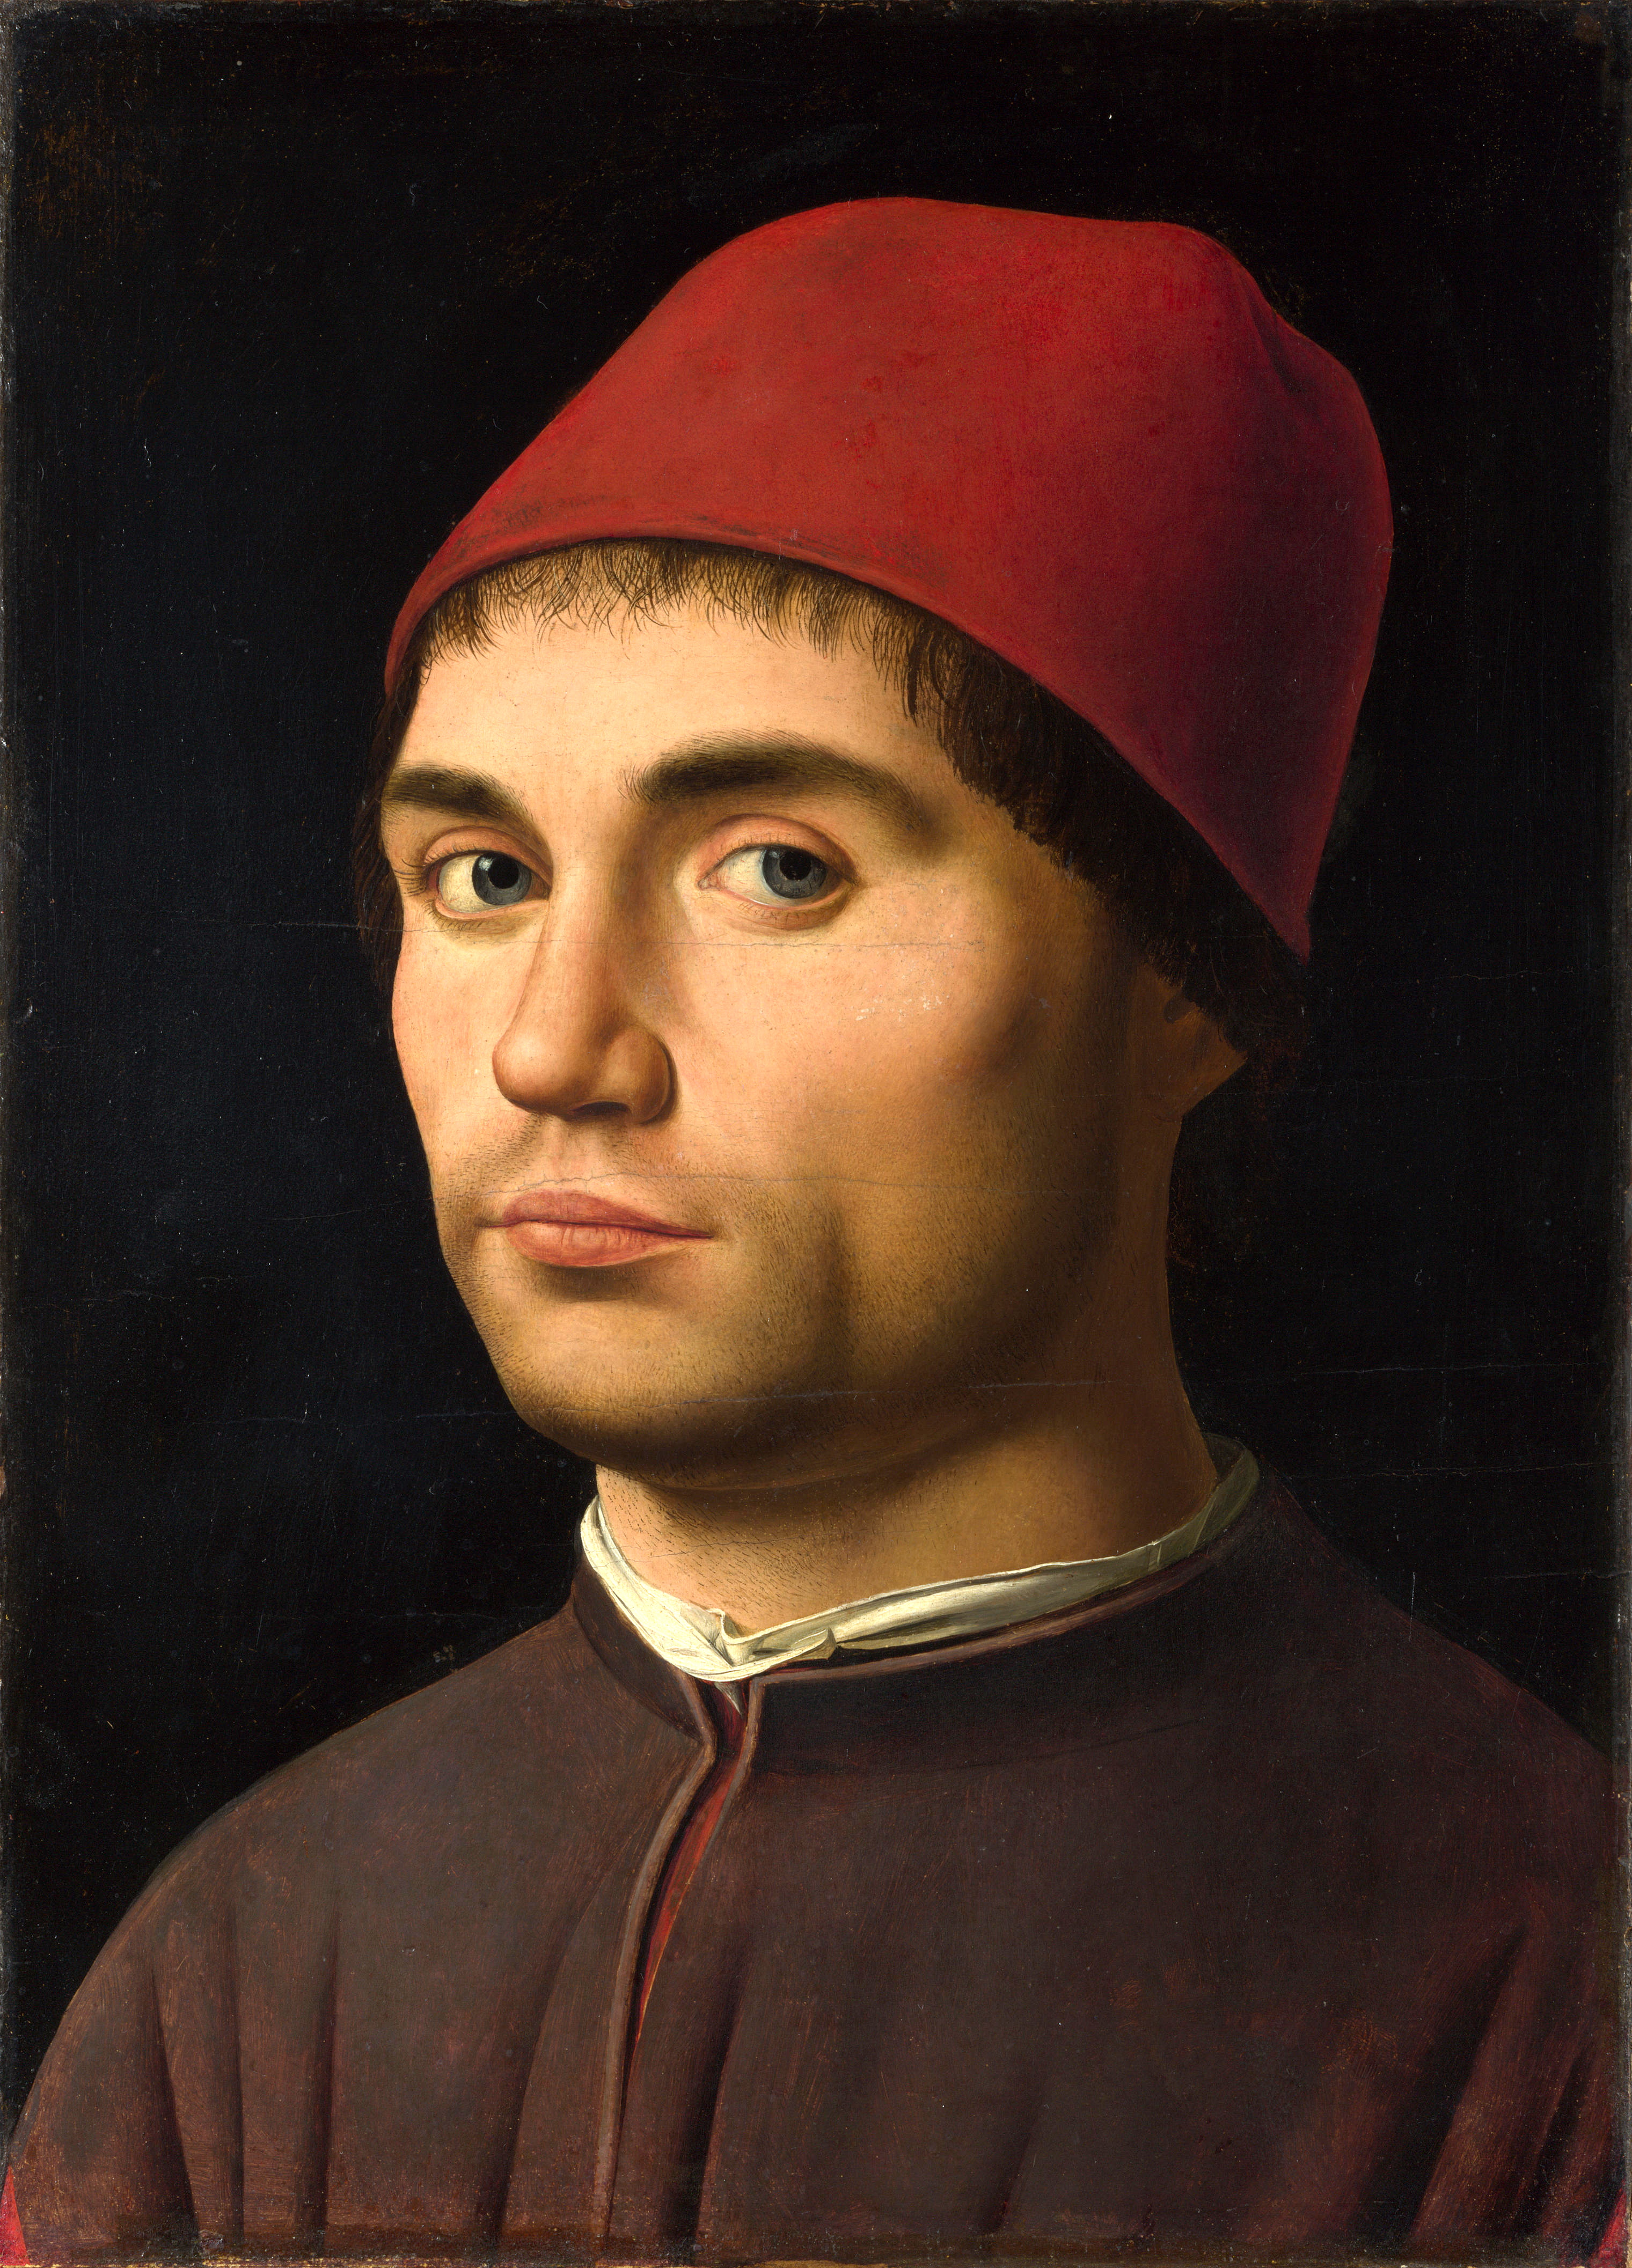 antonello_da_messina_portrait_of_a_man_national_gallery_london.jpg